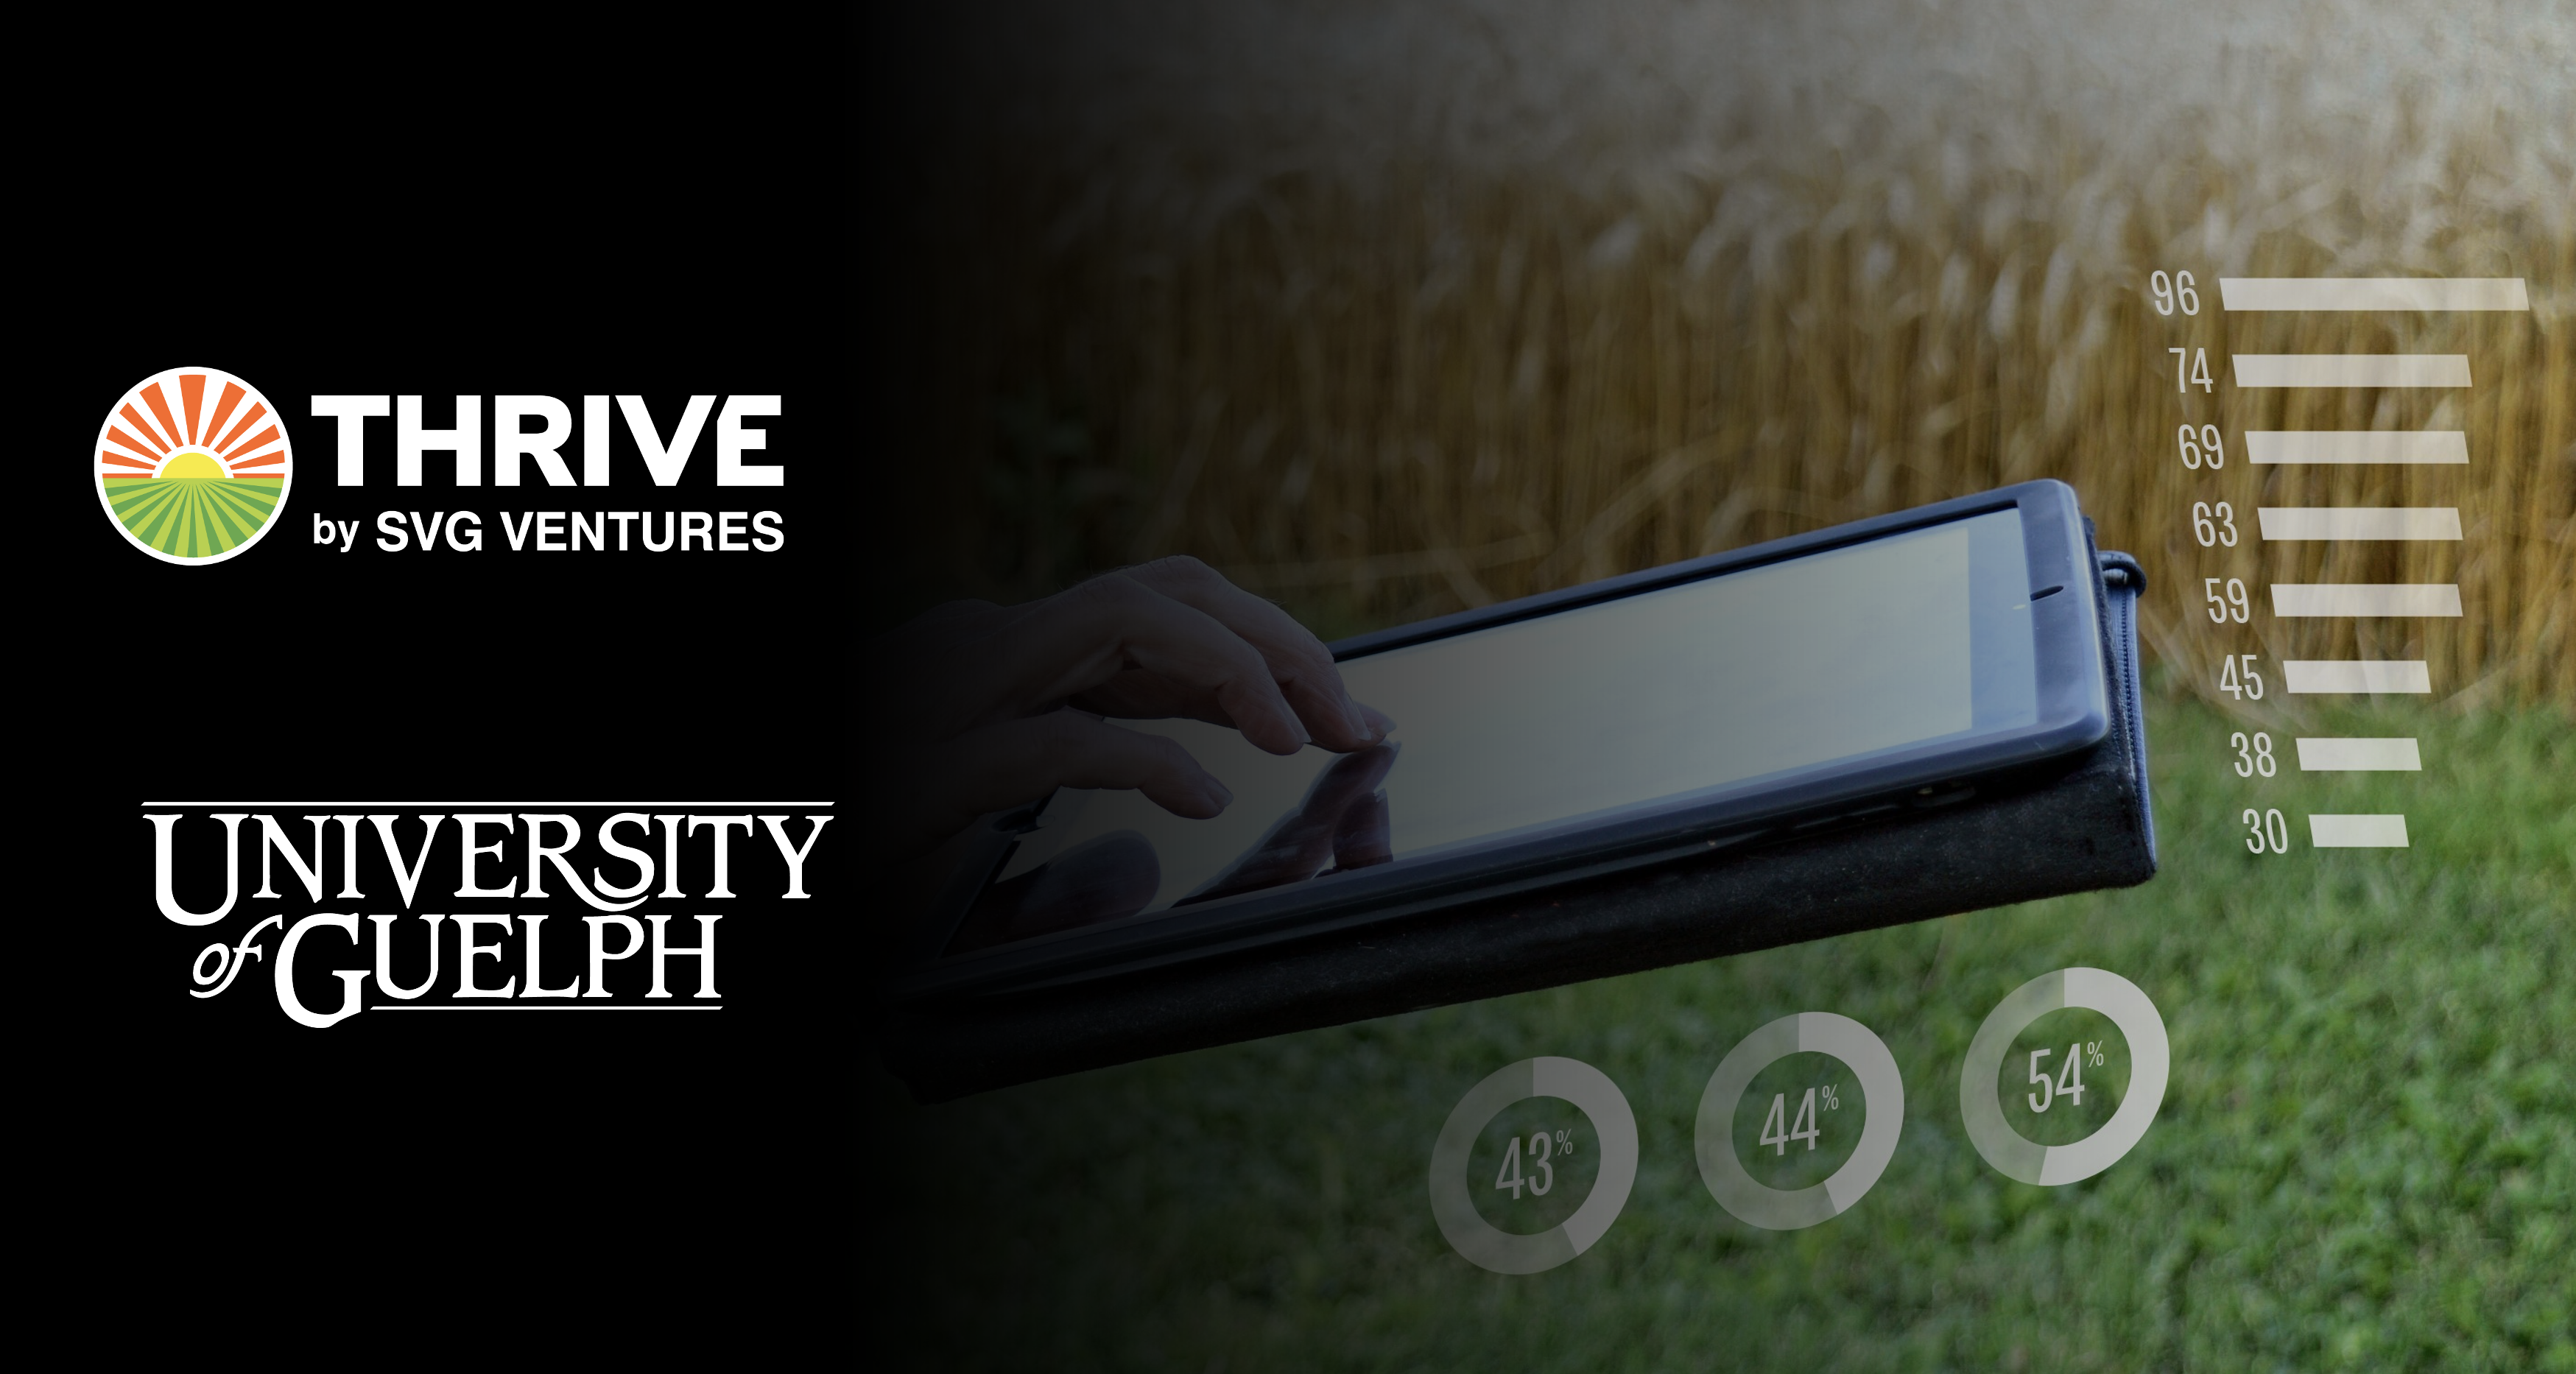 SVG Ventures | THRIVE and University of Guelph partner to elevate Canada's agri-food sector